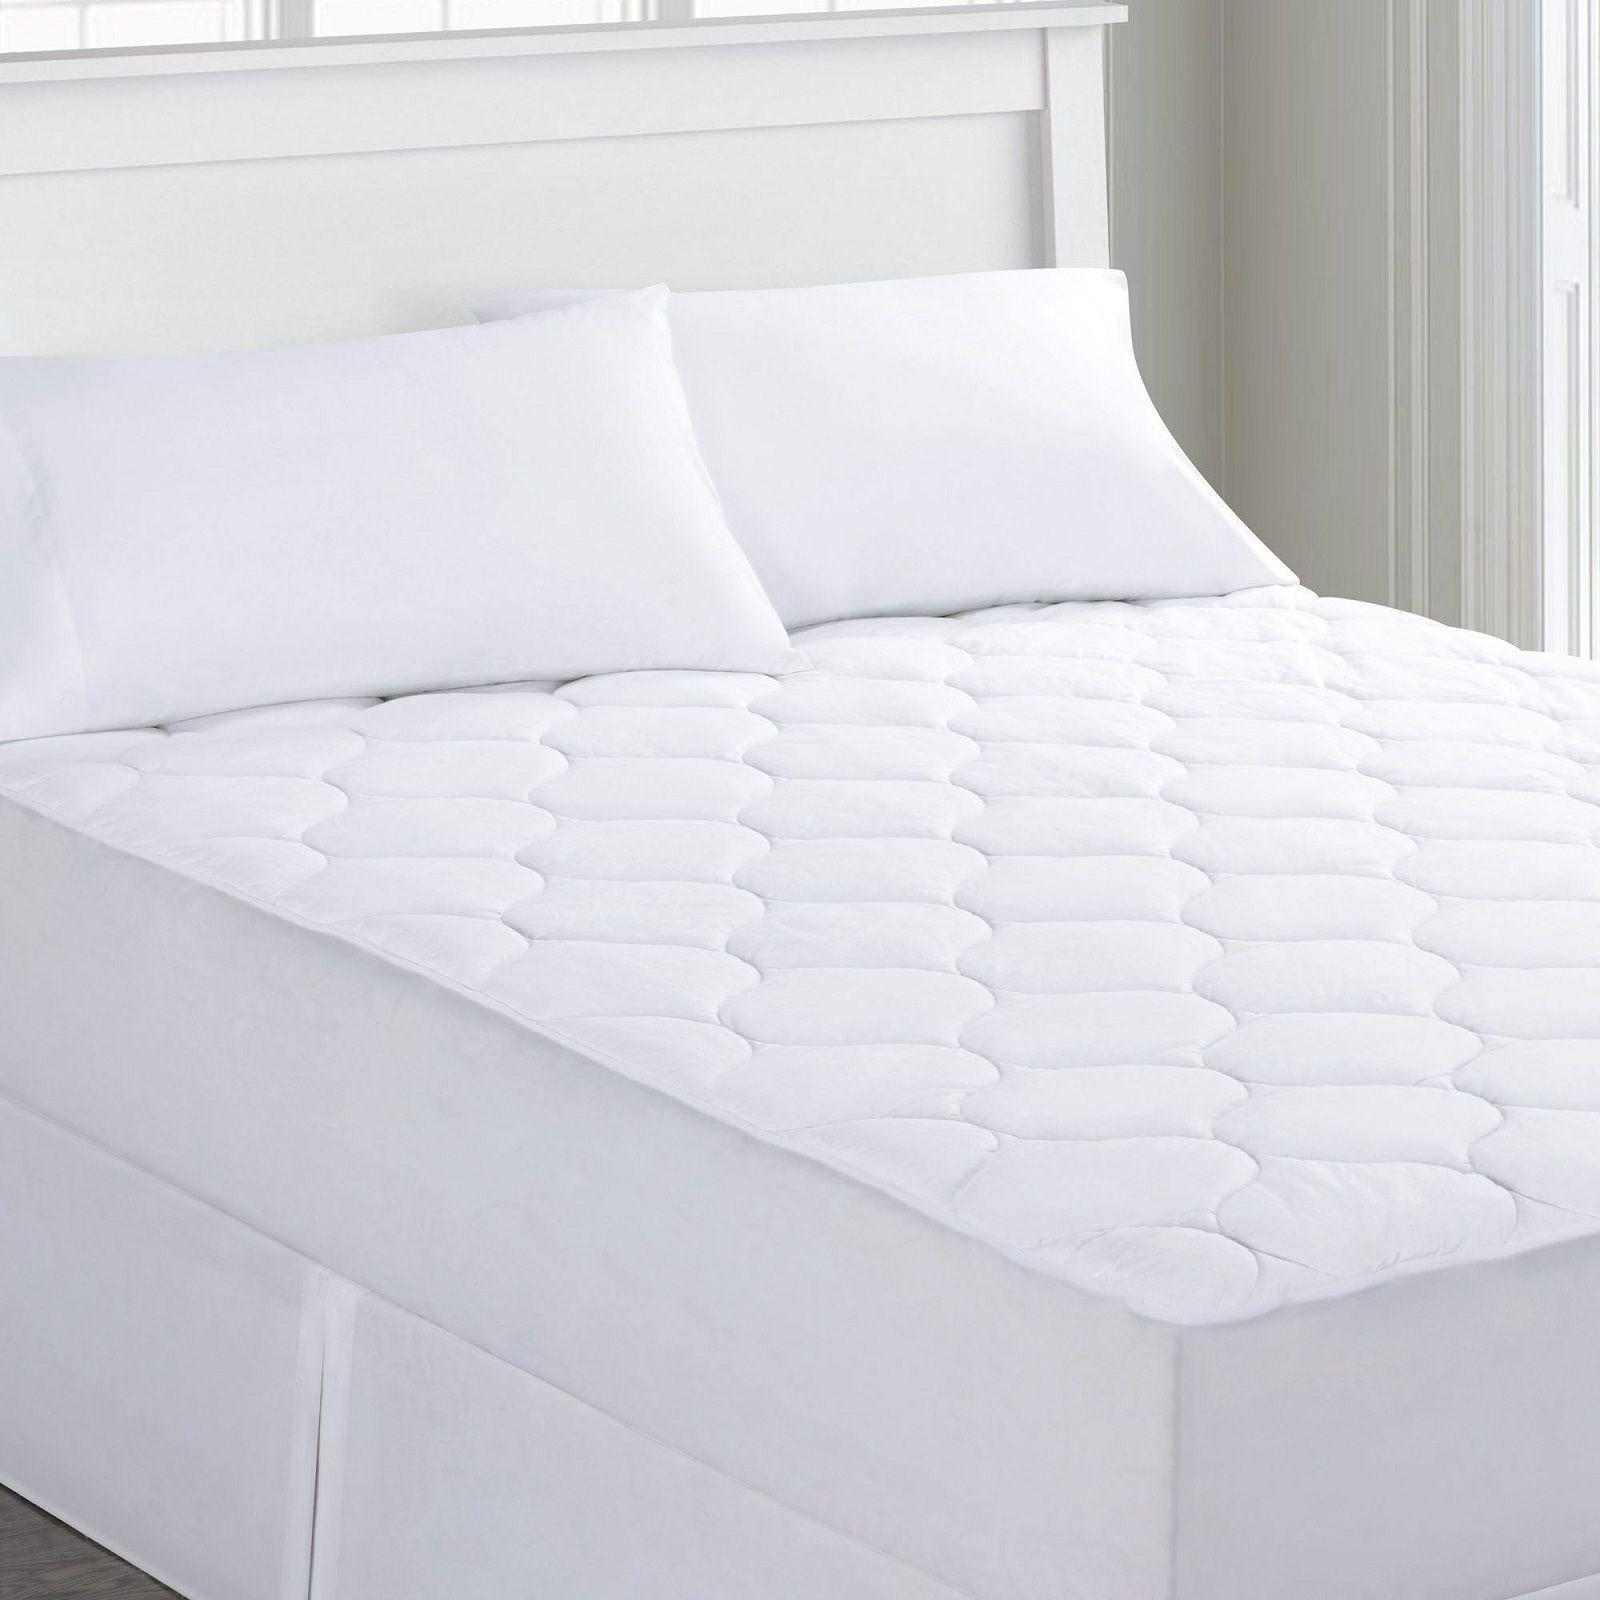 Quilted Waterproof Mattress Pad Against